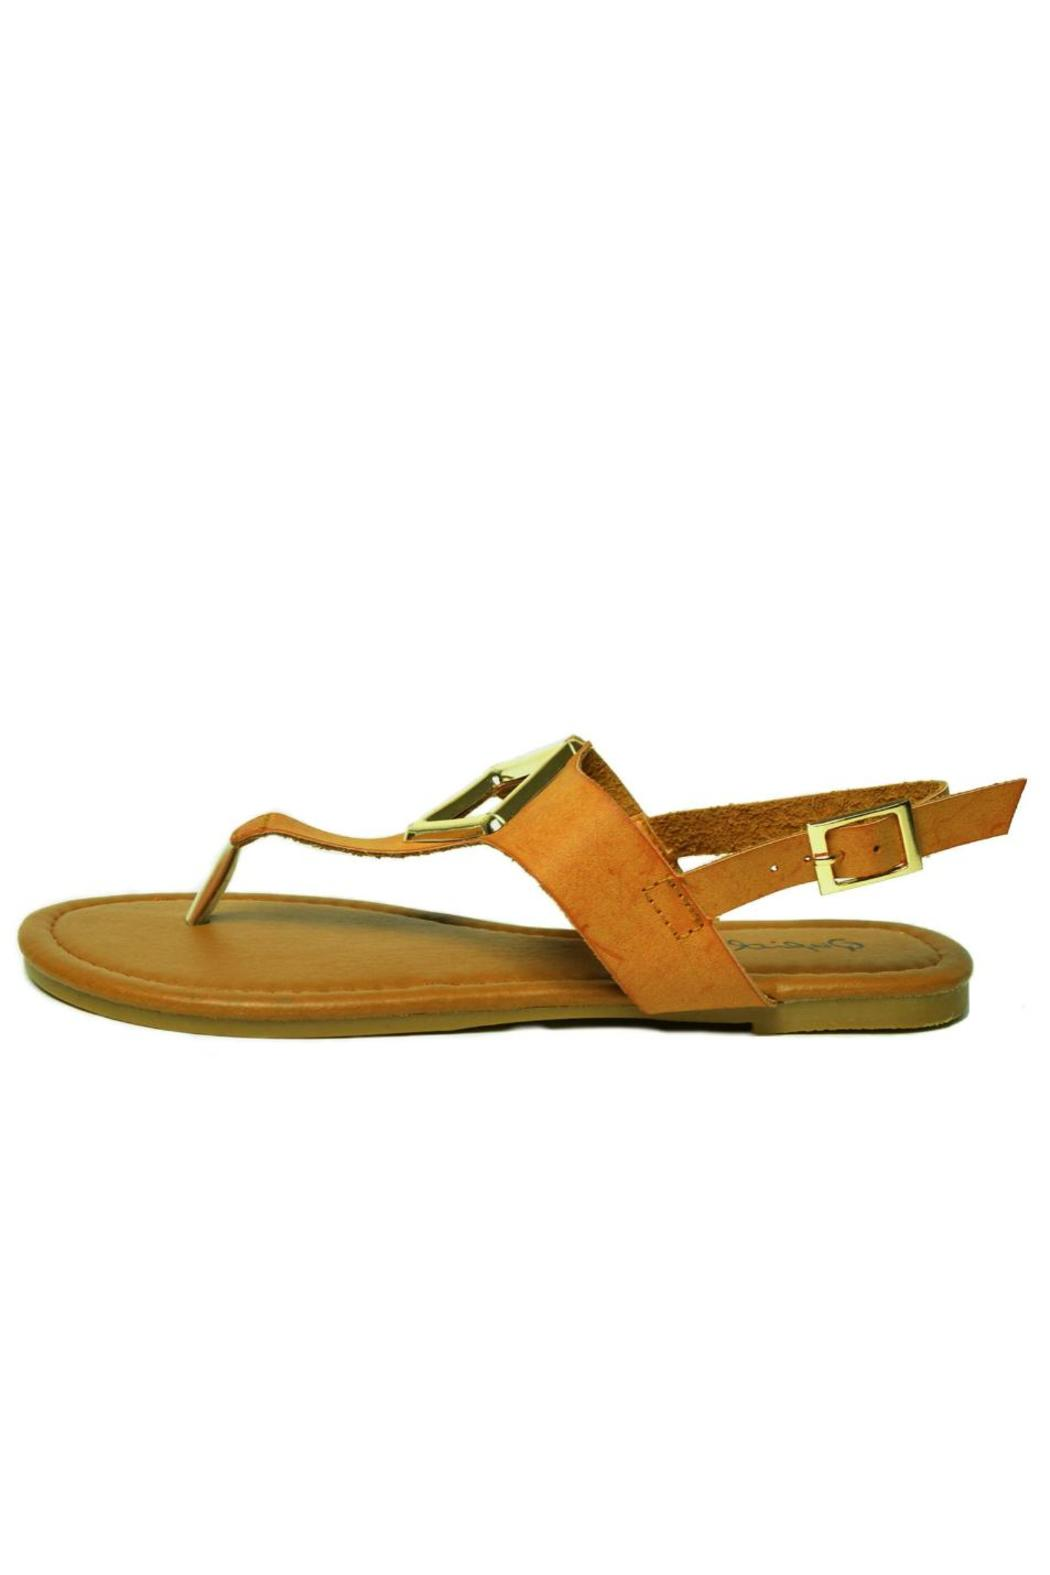 Qupid T-Strap, Metallic Ornament-Sandal - Main Image